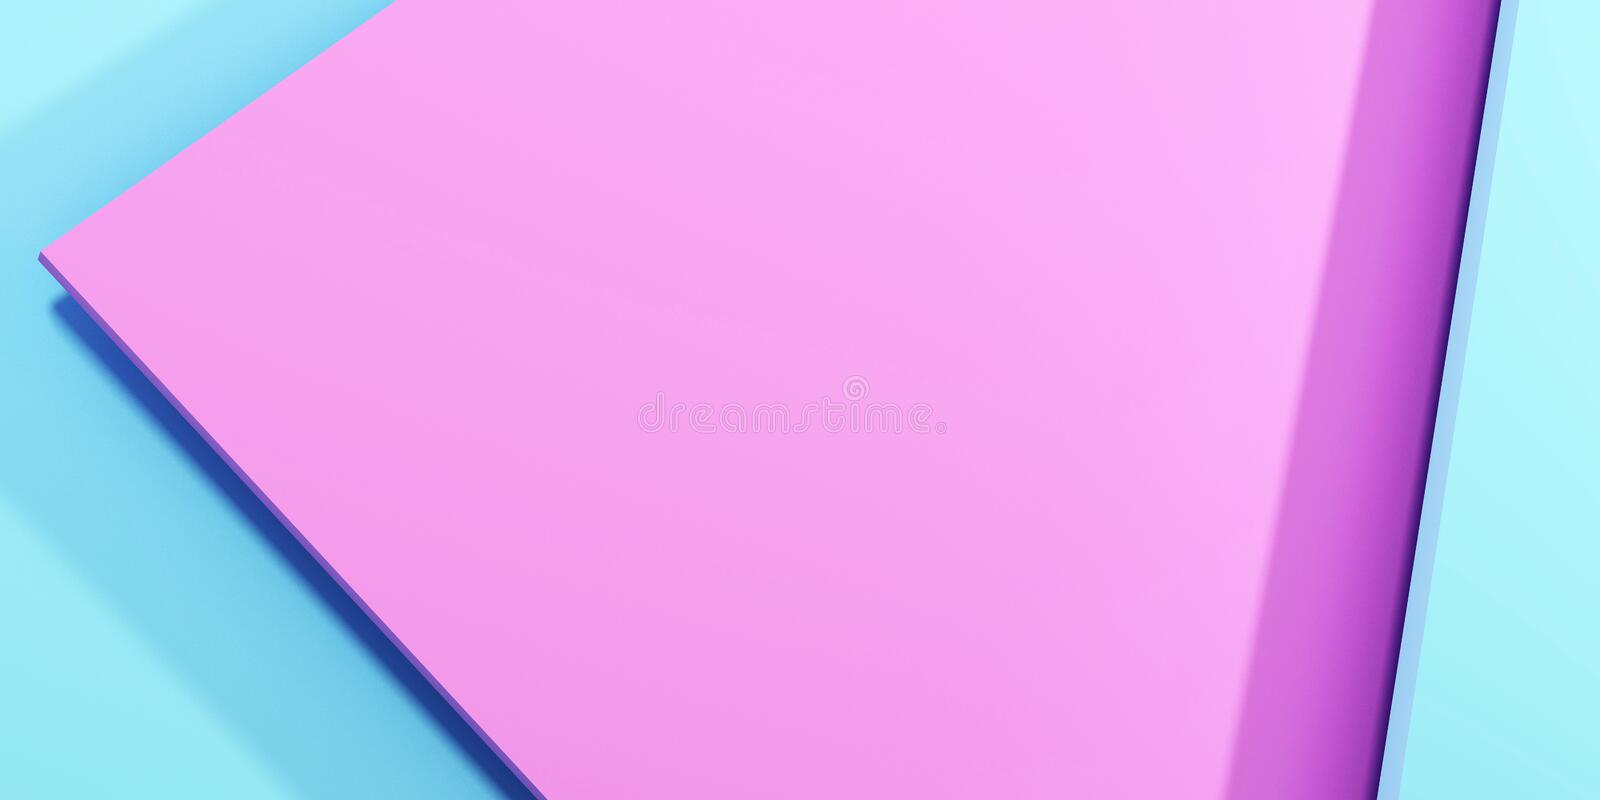 Pink and blue pastel background. vector illustration